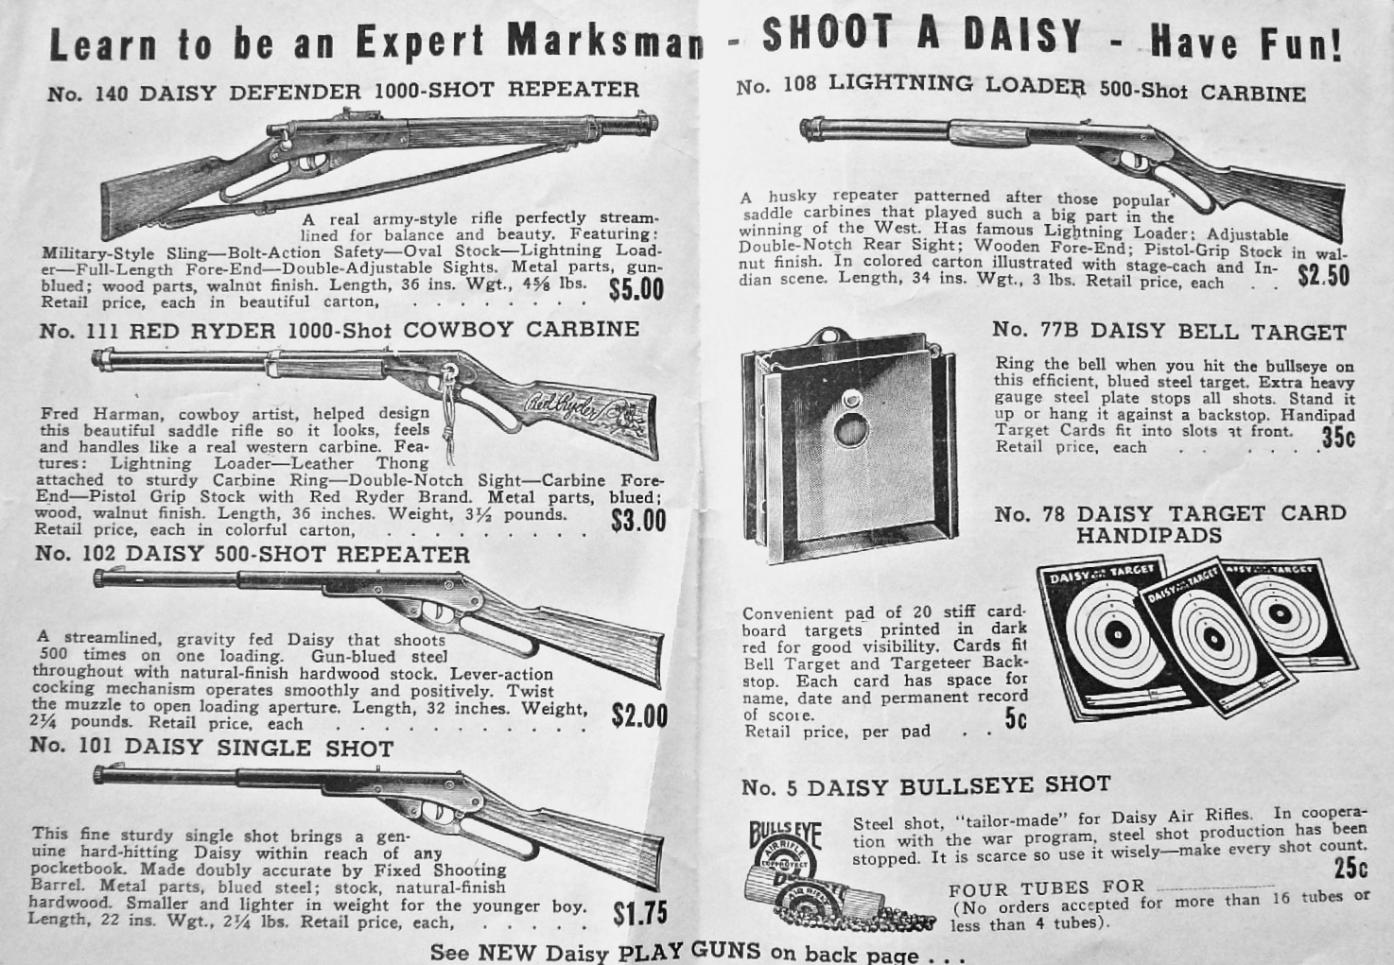 Captivating Daisy Red Ryder Parts Diagram Gallery - Best Image Wire ...